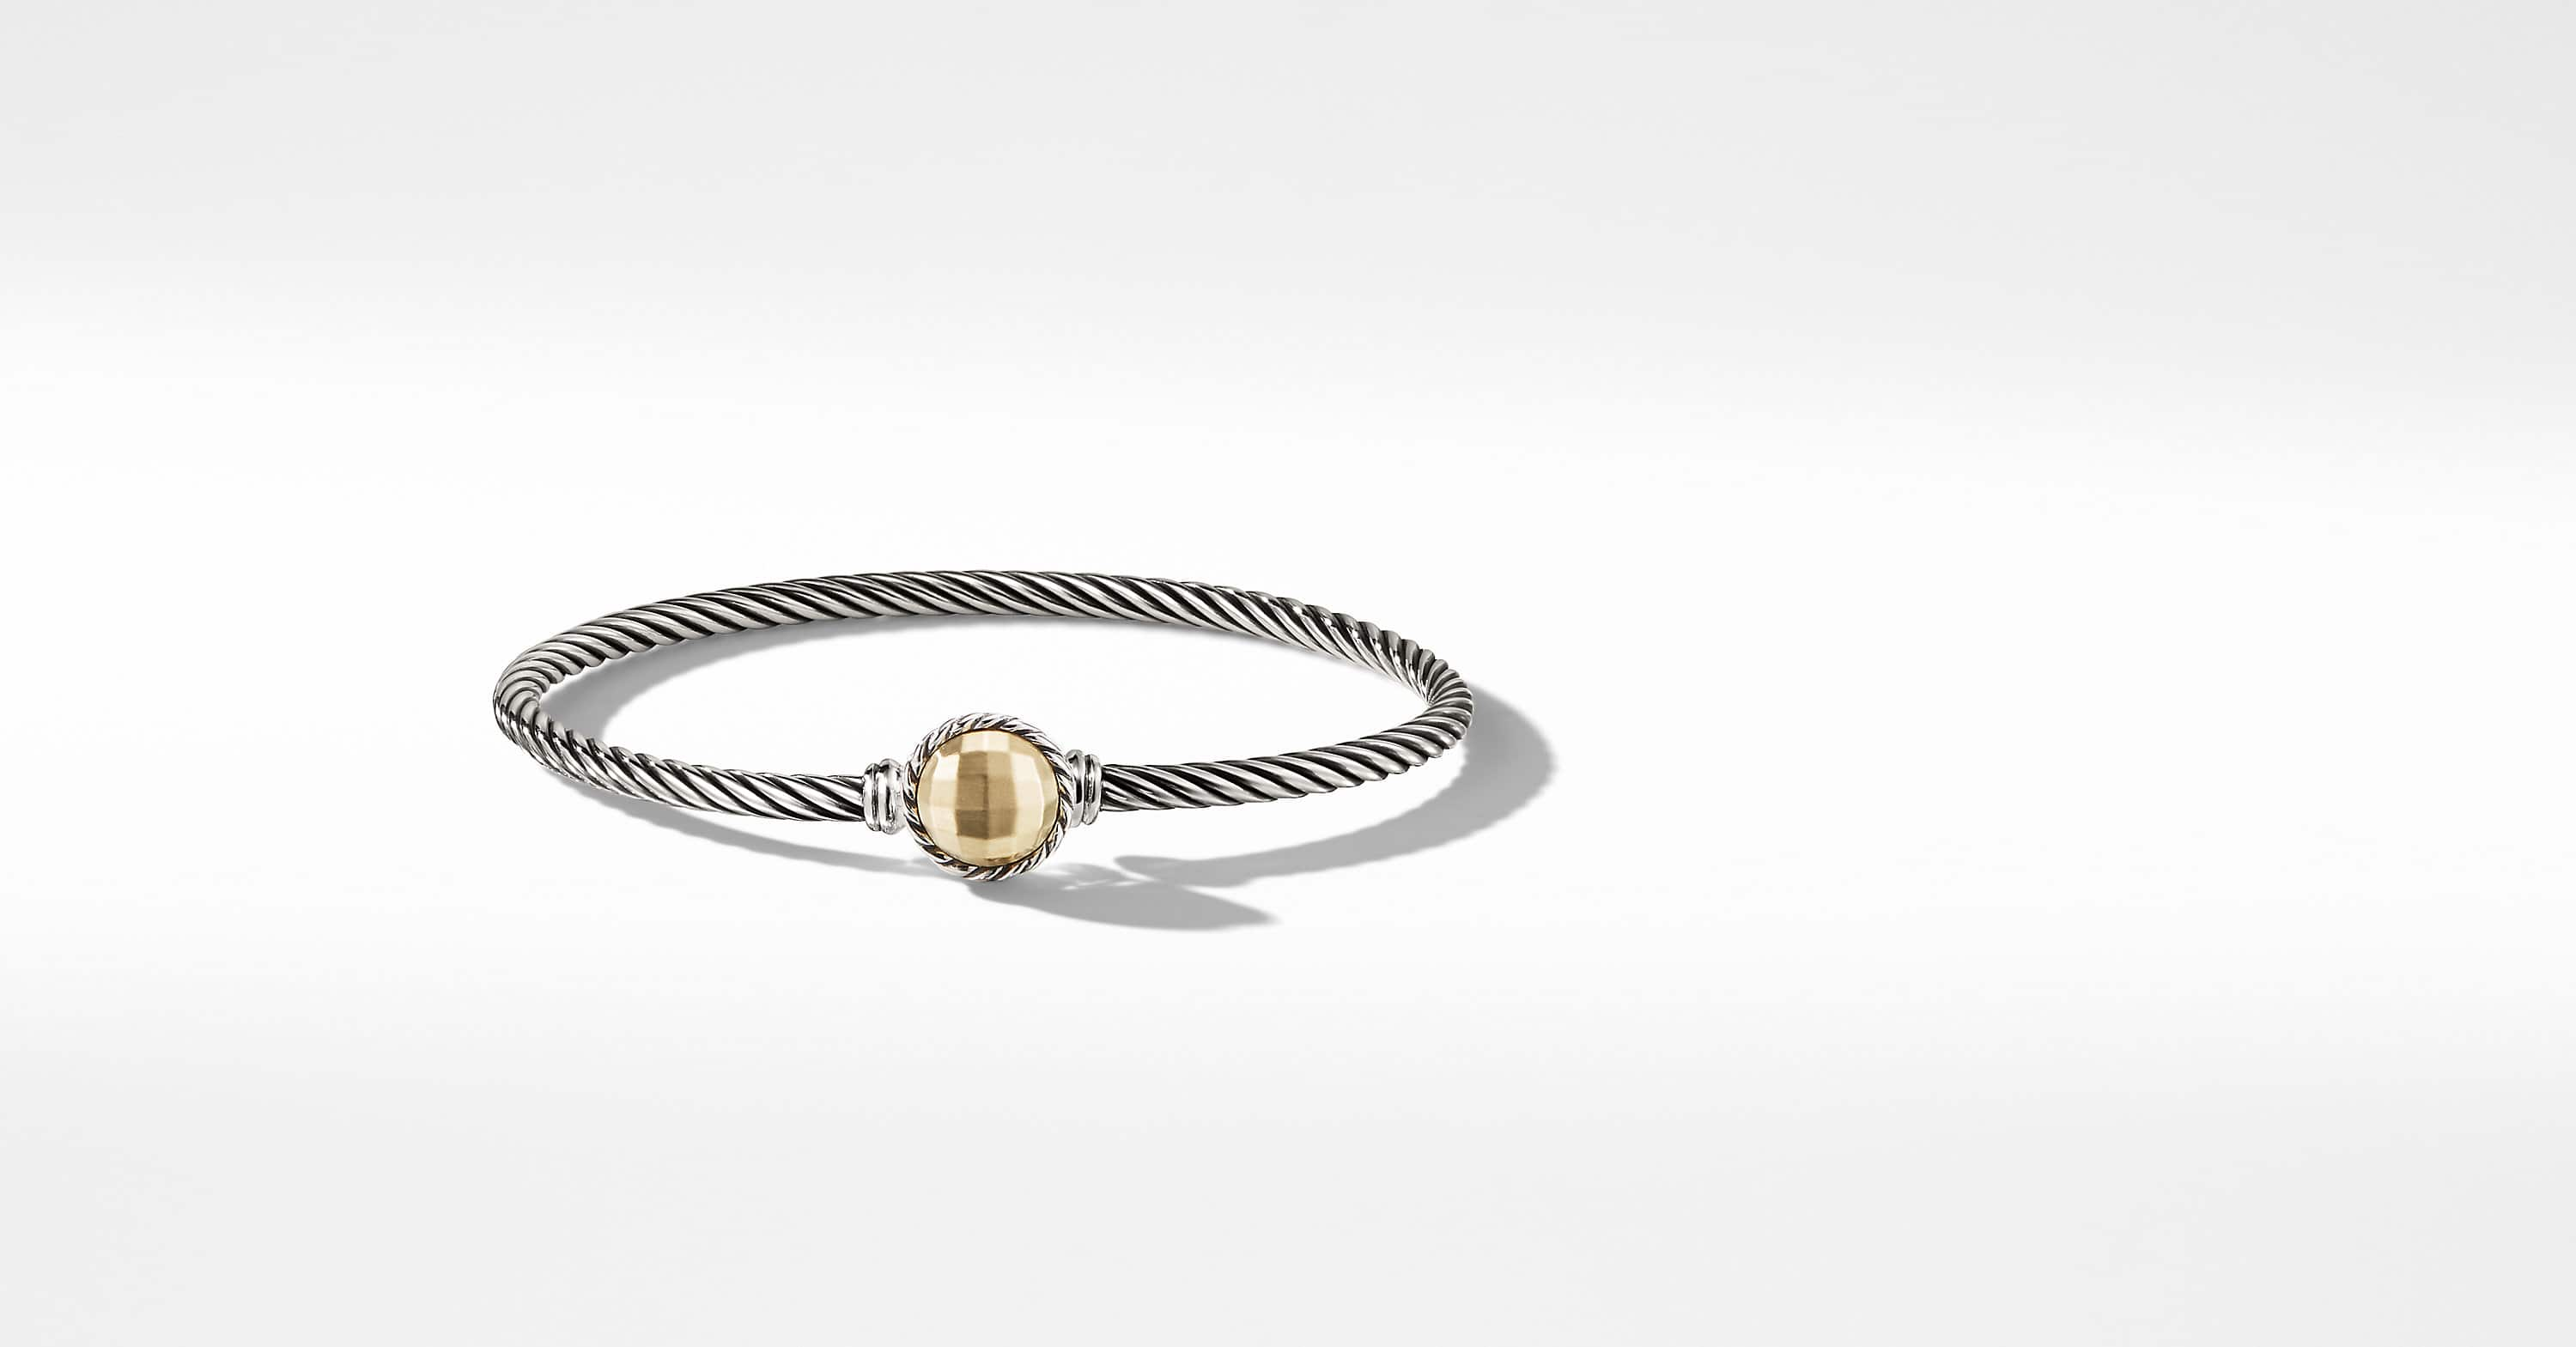 Chatelaine Bracelet with 18K Gold